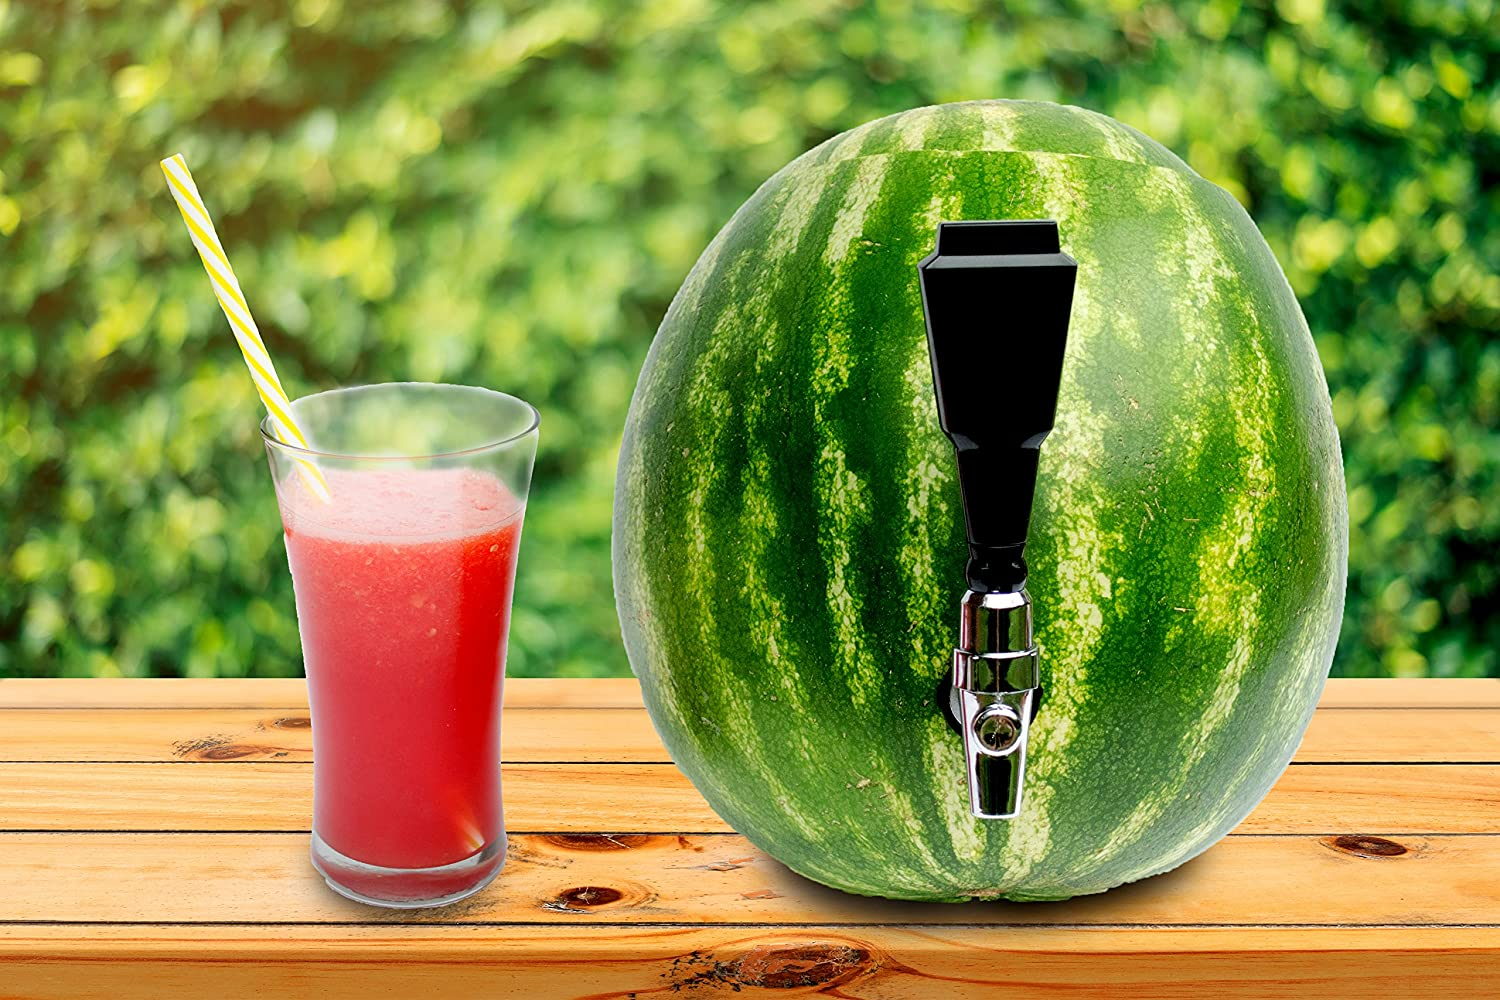 Stainless Steel Drink Dispenser Set for Watermelons /& Other Fruits Fun Home Bar Gadgets /& Cocktail Party Supplies Fruit Keg Tapping /& Spout Kit